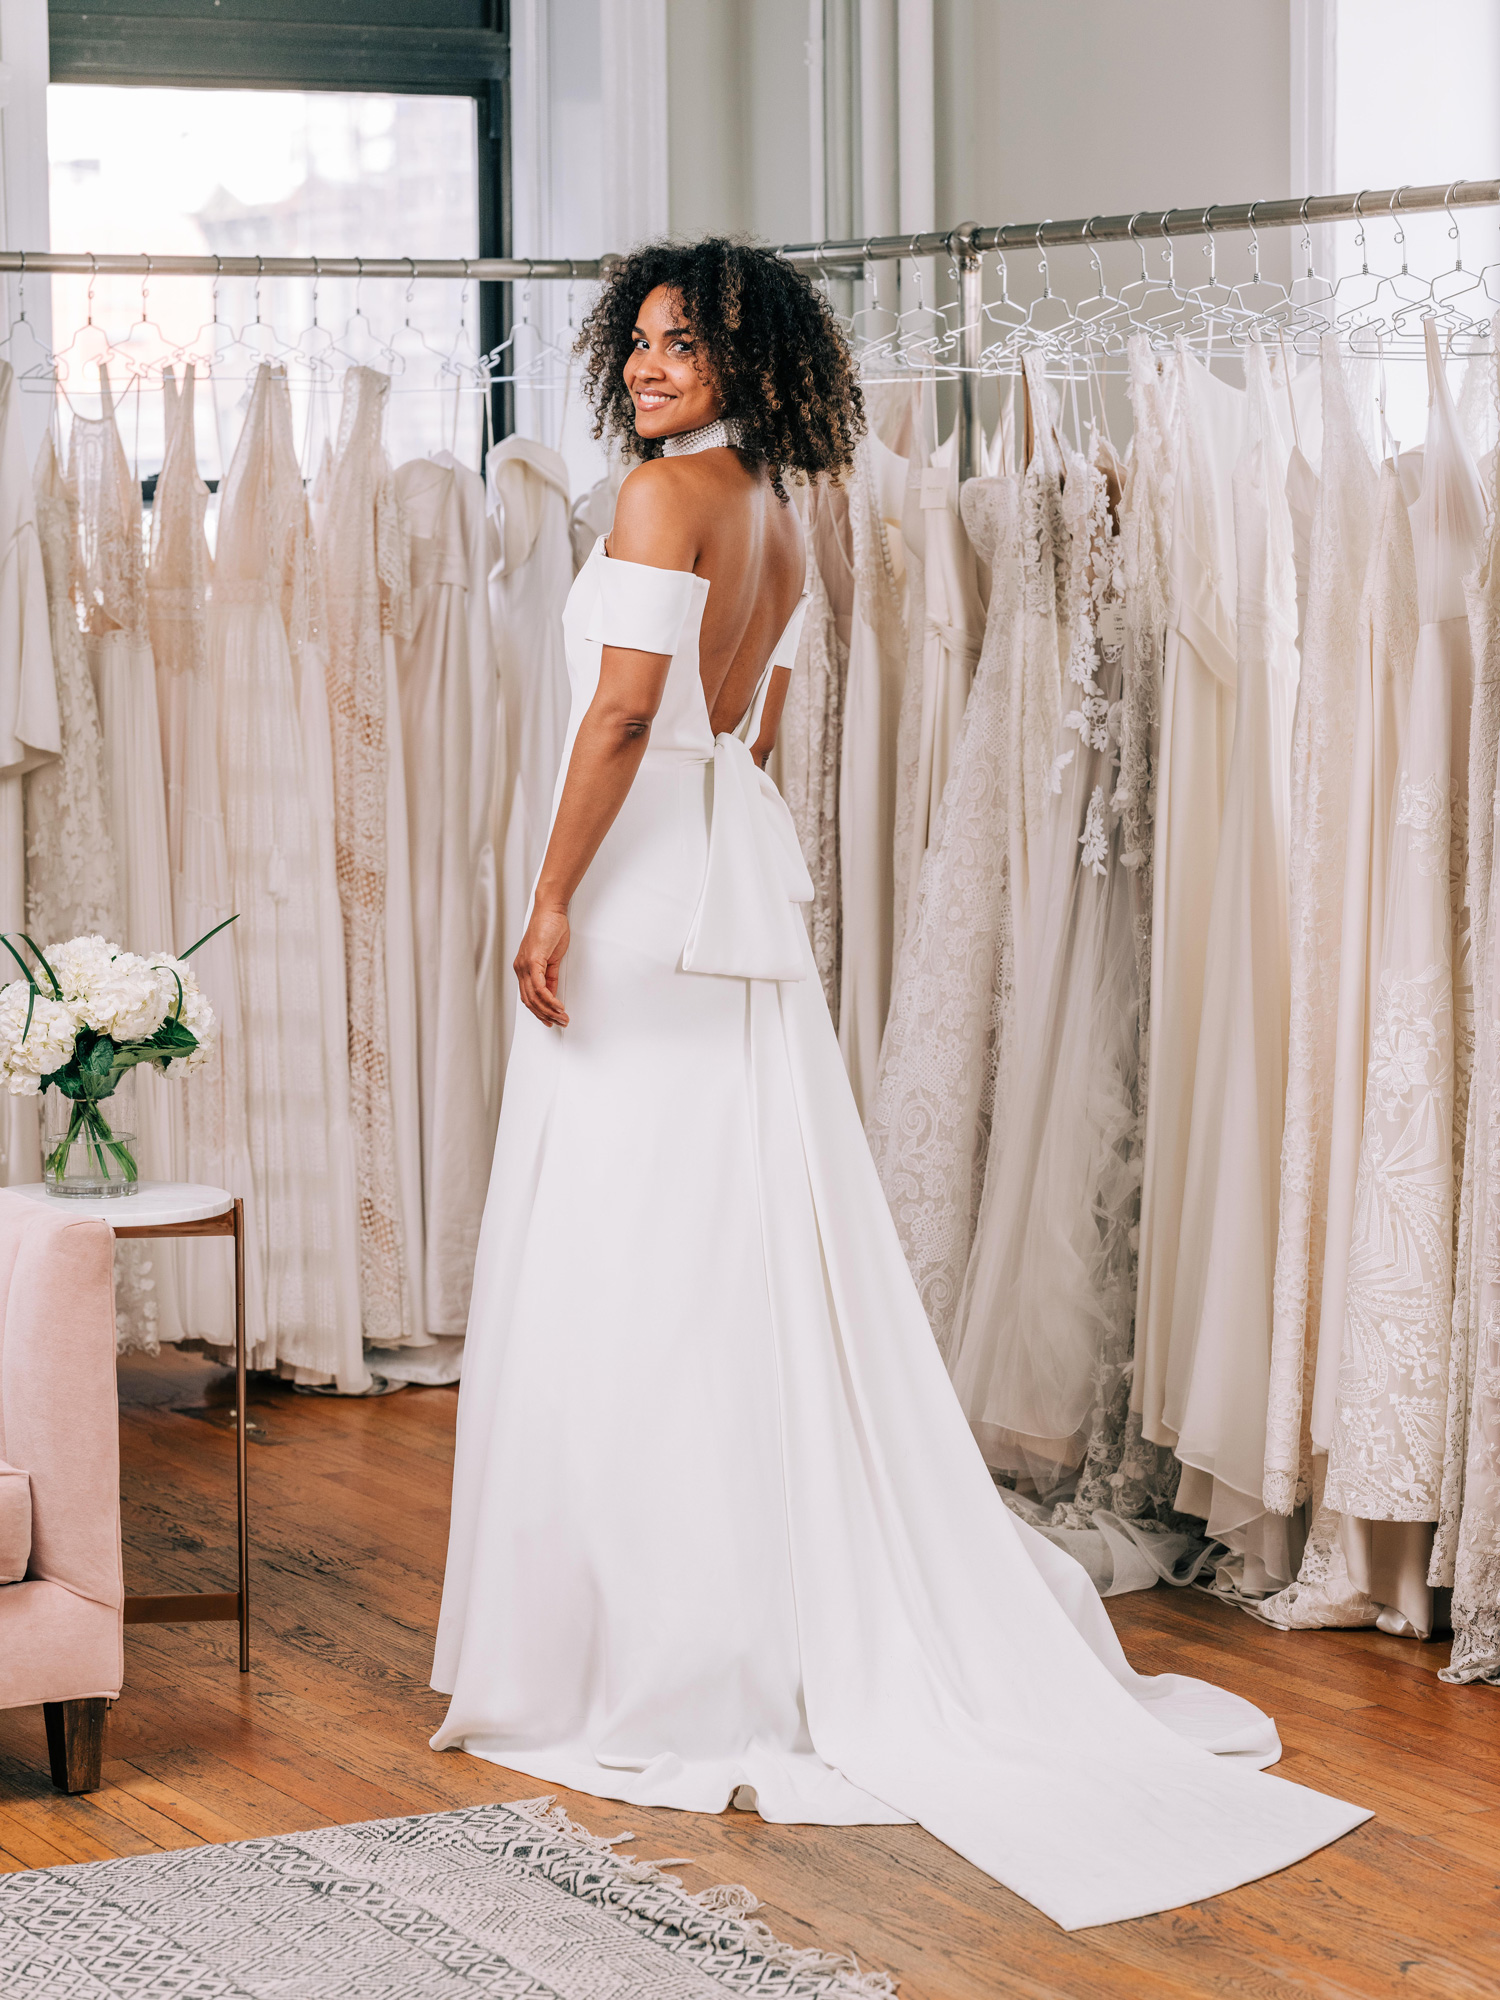 new york wedding photographer gabriella nyc - 7 TIPS FOR FINDING YOUR WEDDING DRESS